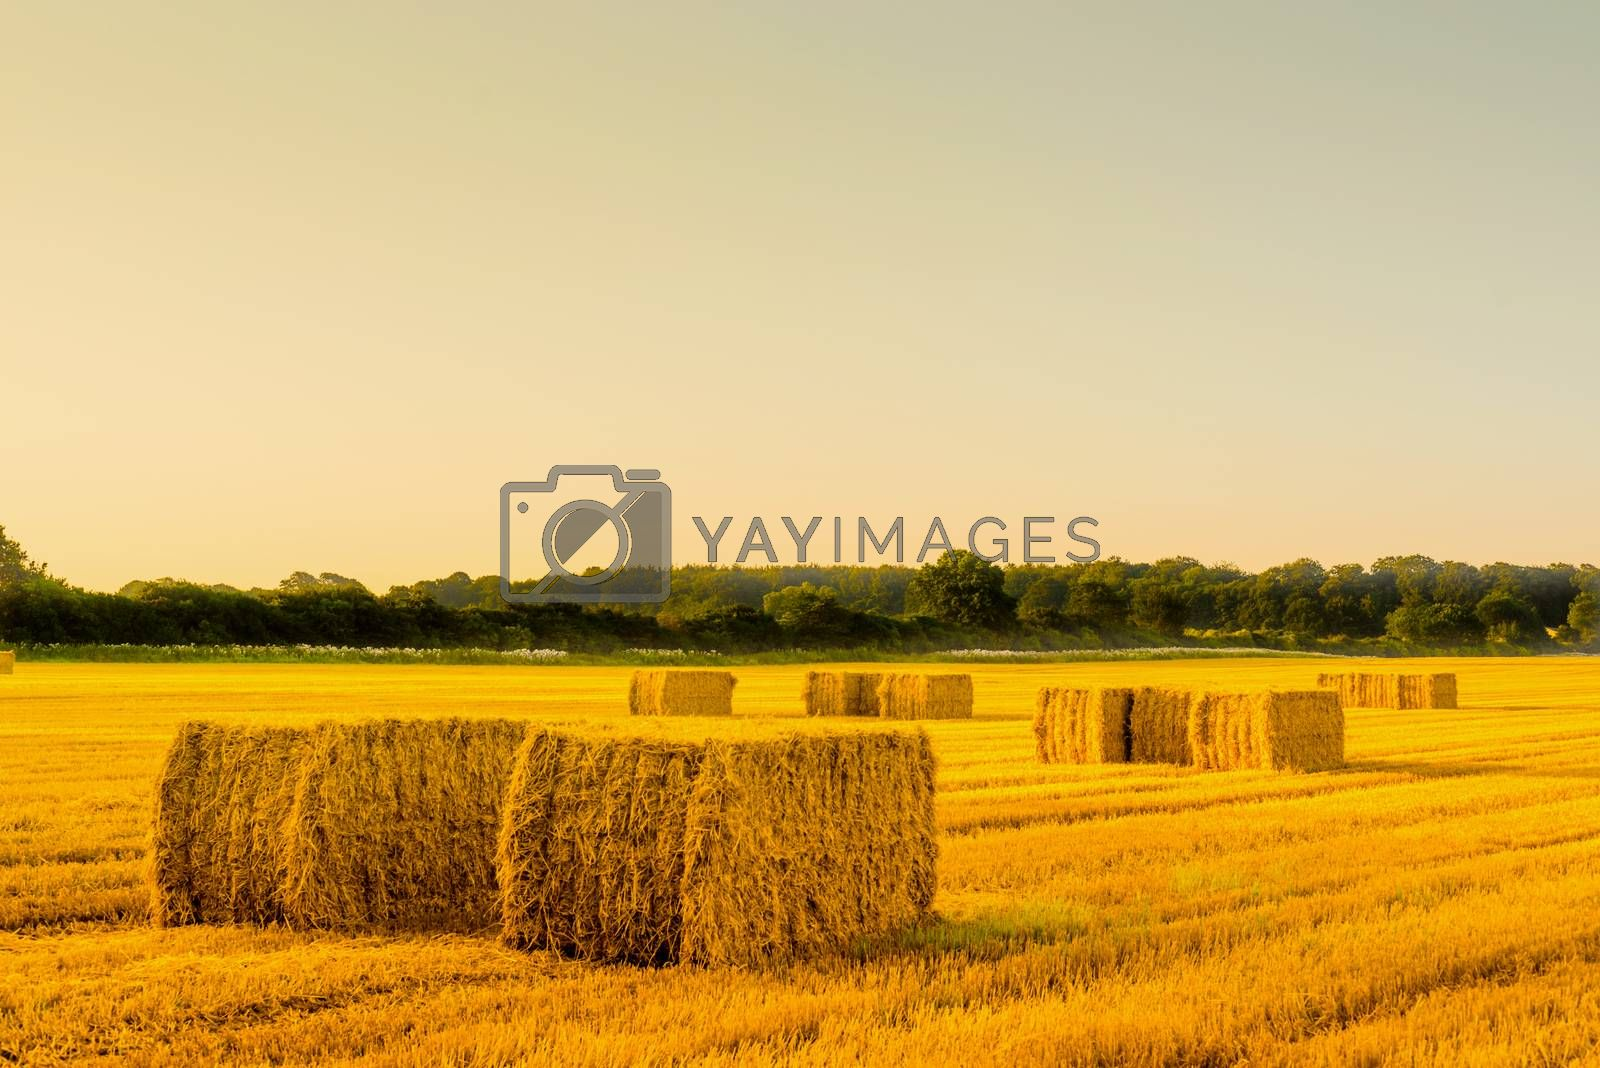 Straw bales in a countryside landscape in the morning